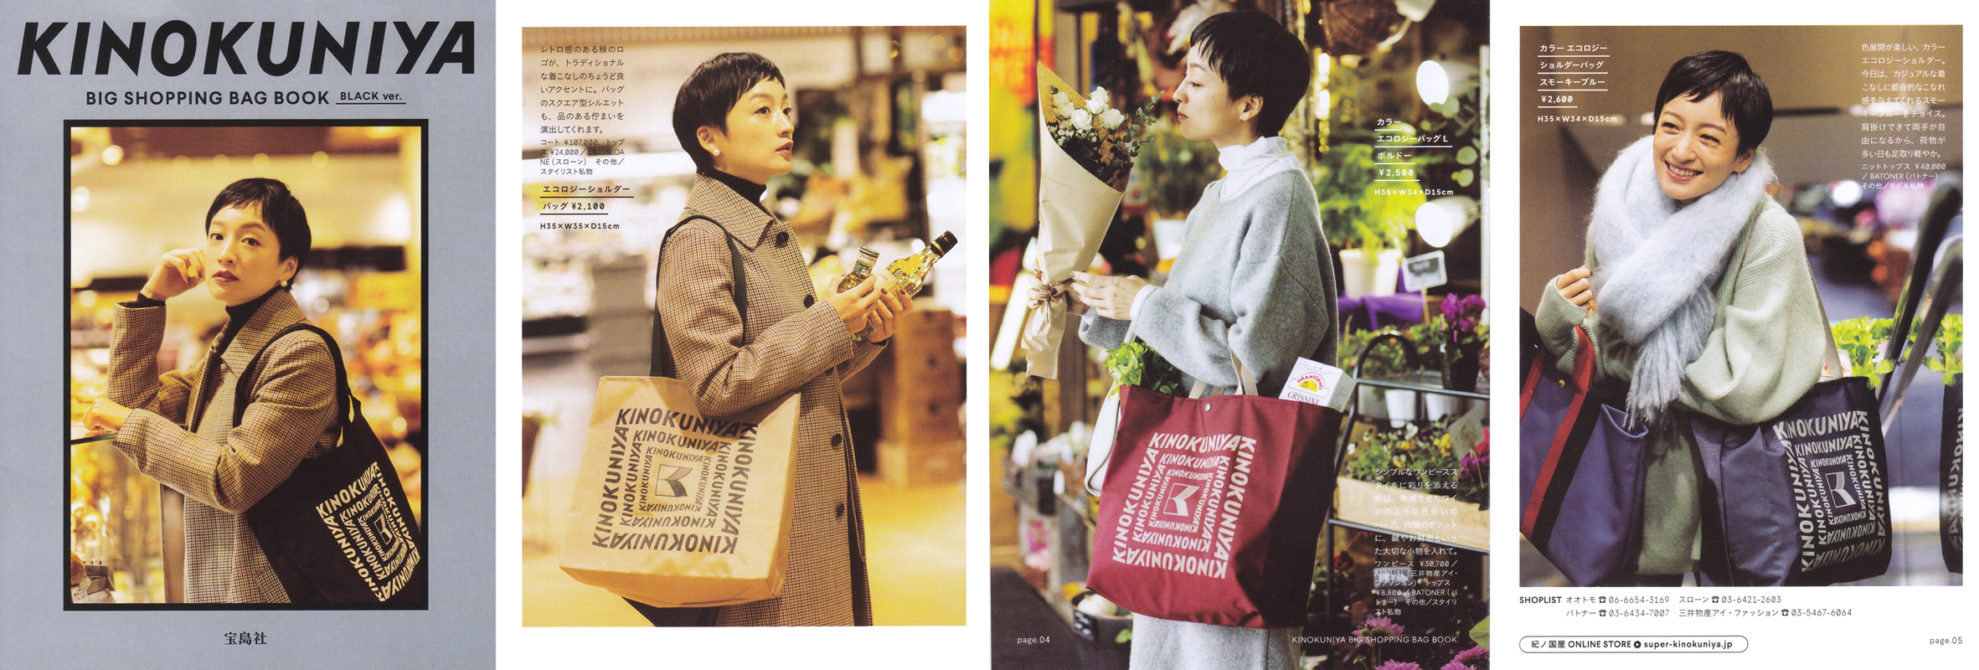 KINOKUNIYA BIG SHOPPING BAG BOOK